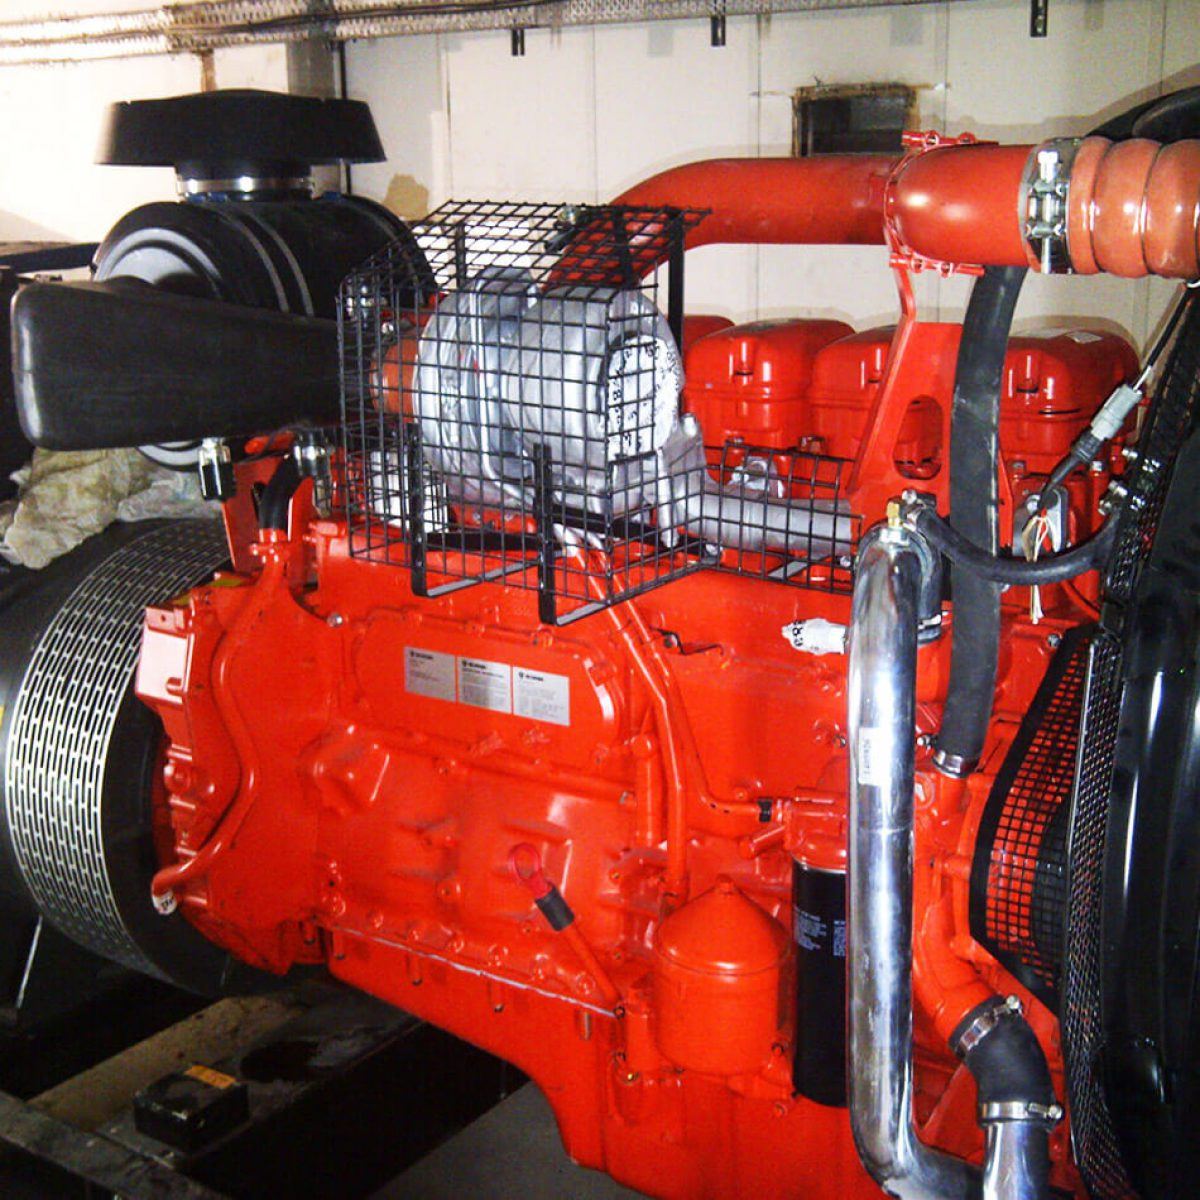 Overcoming Access Issues for Flagship London Retail Generator Installation